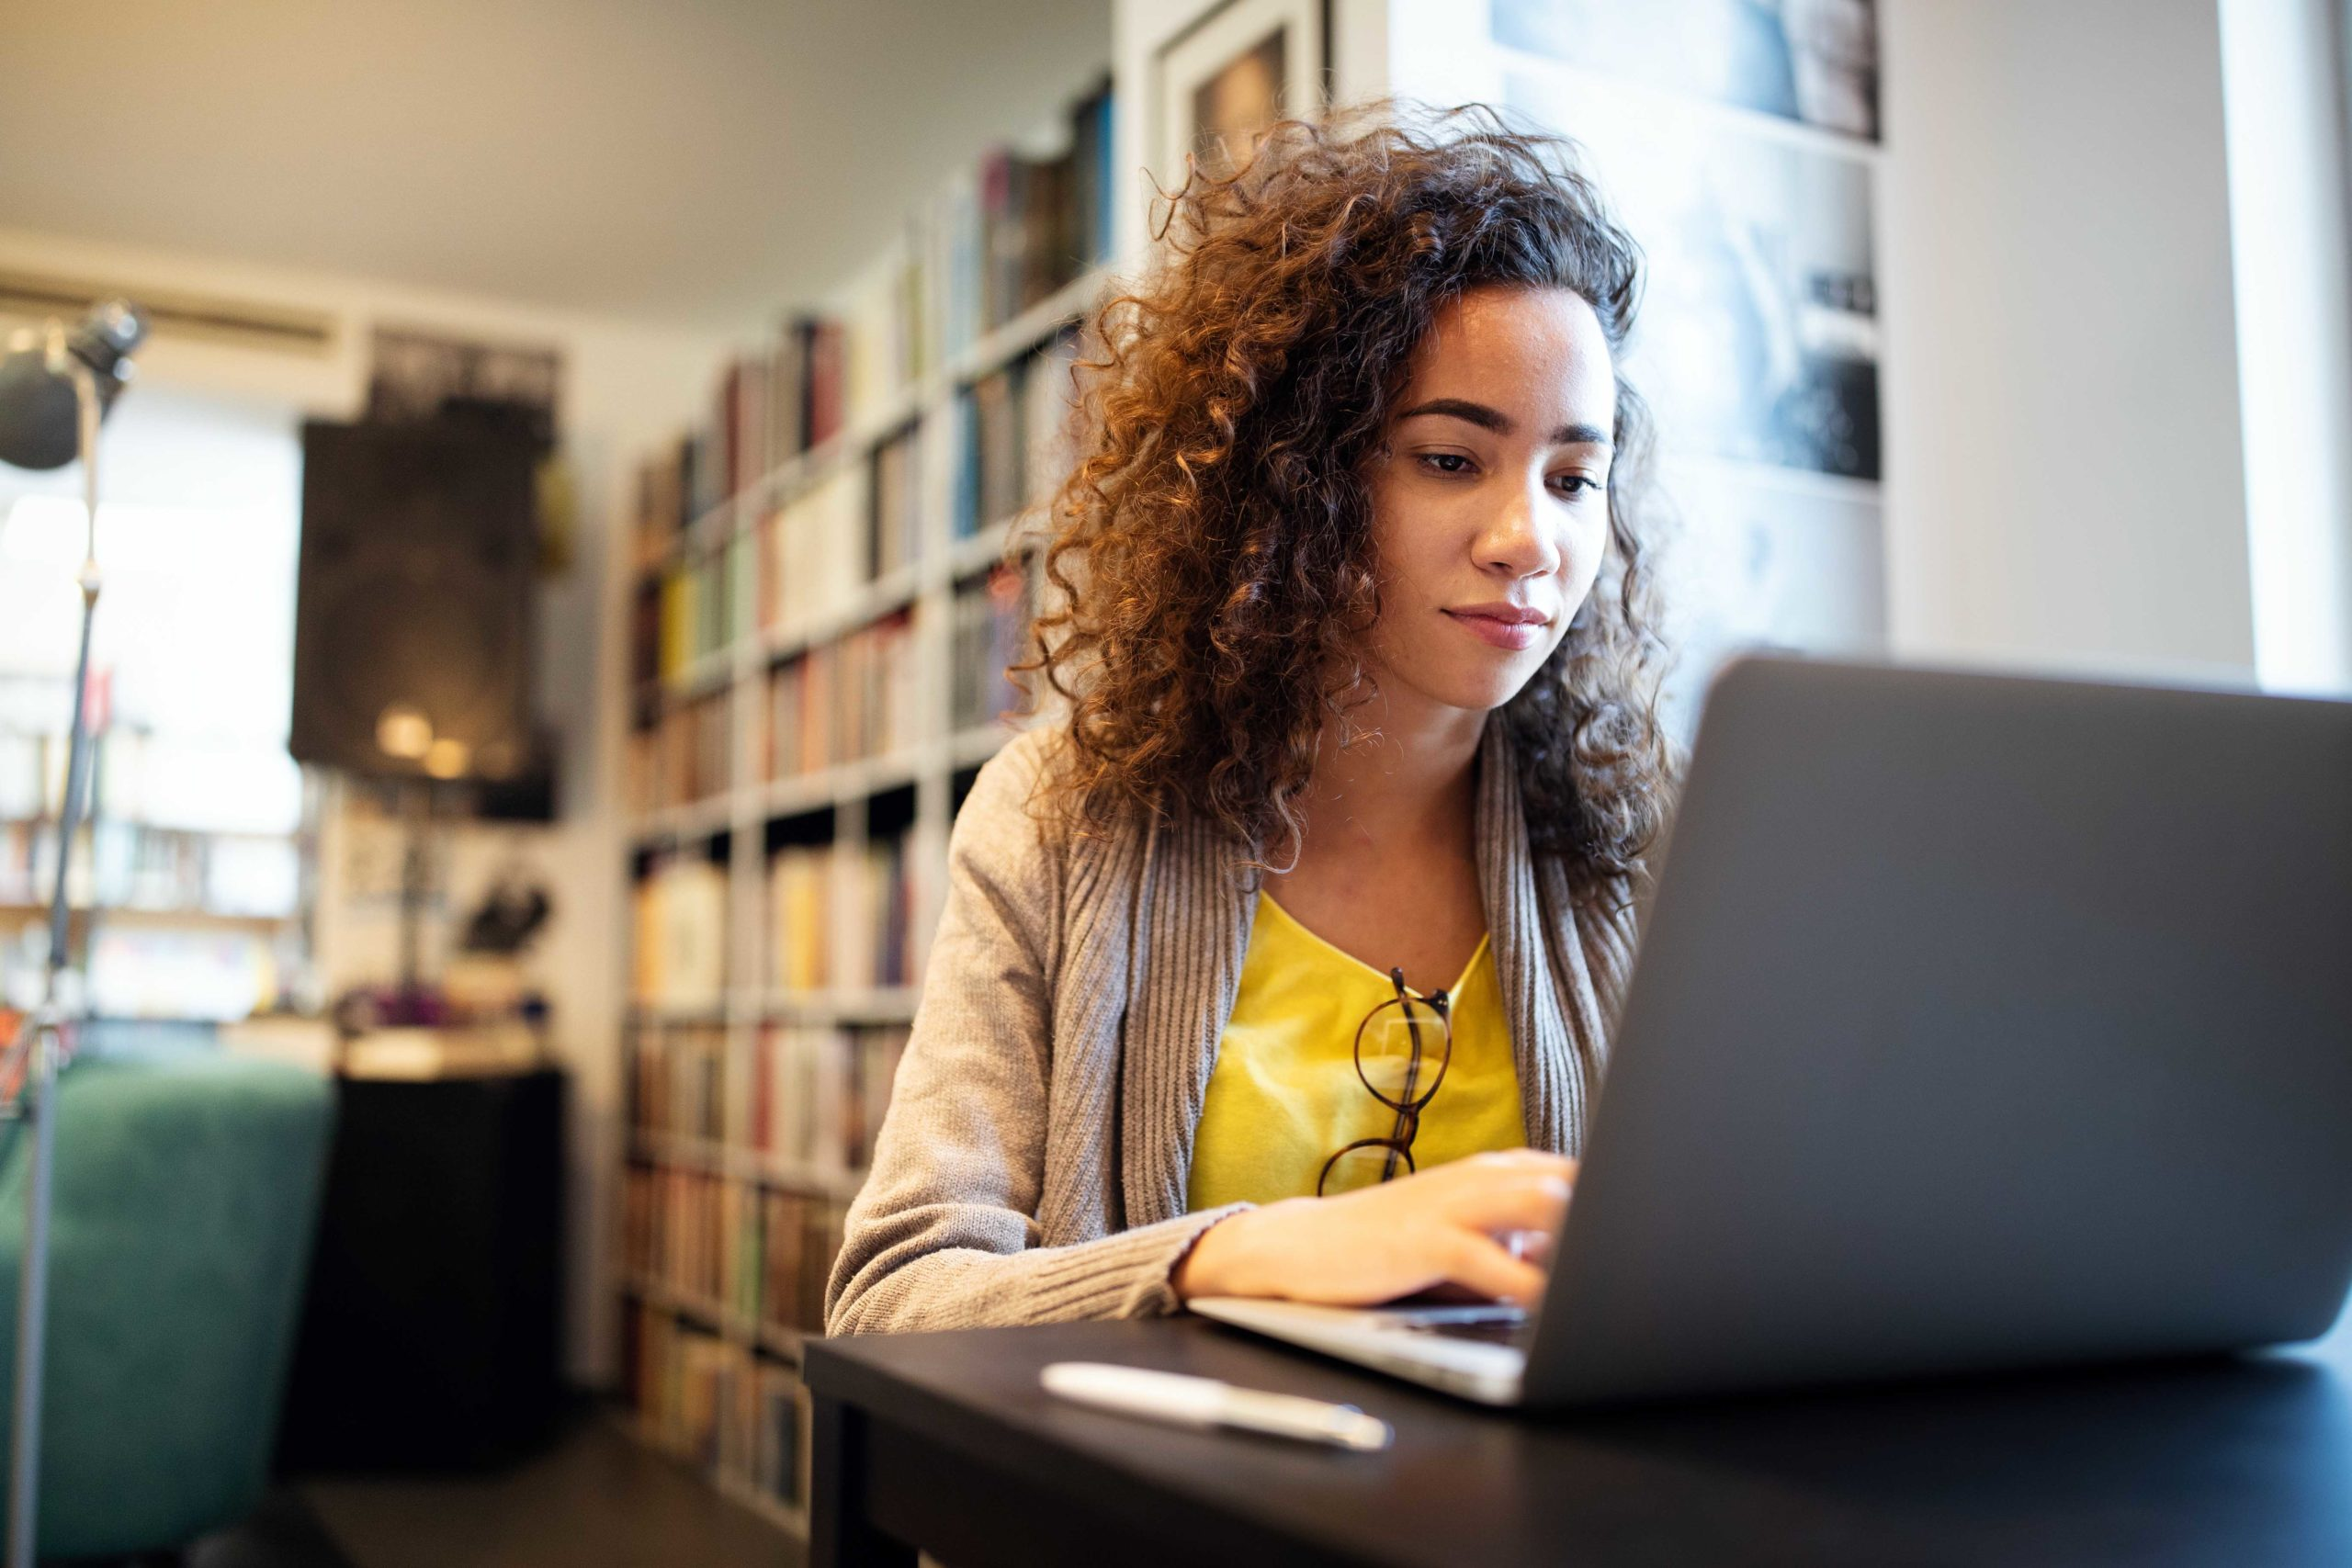 Young,Beautiful,Student,Girl,Working,,Learning,In,College,Library